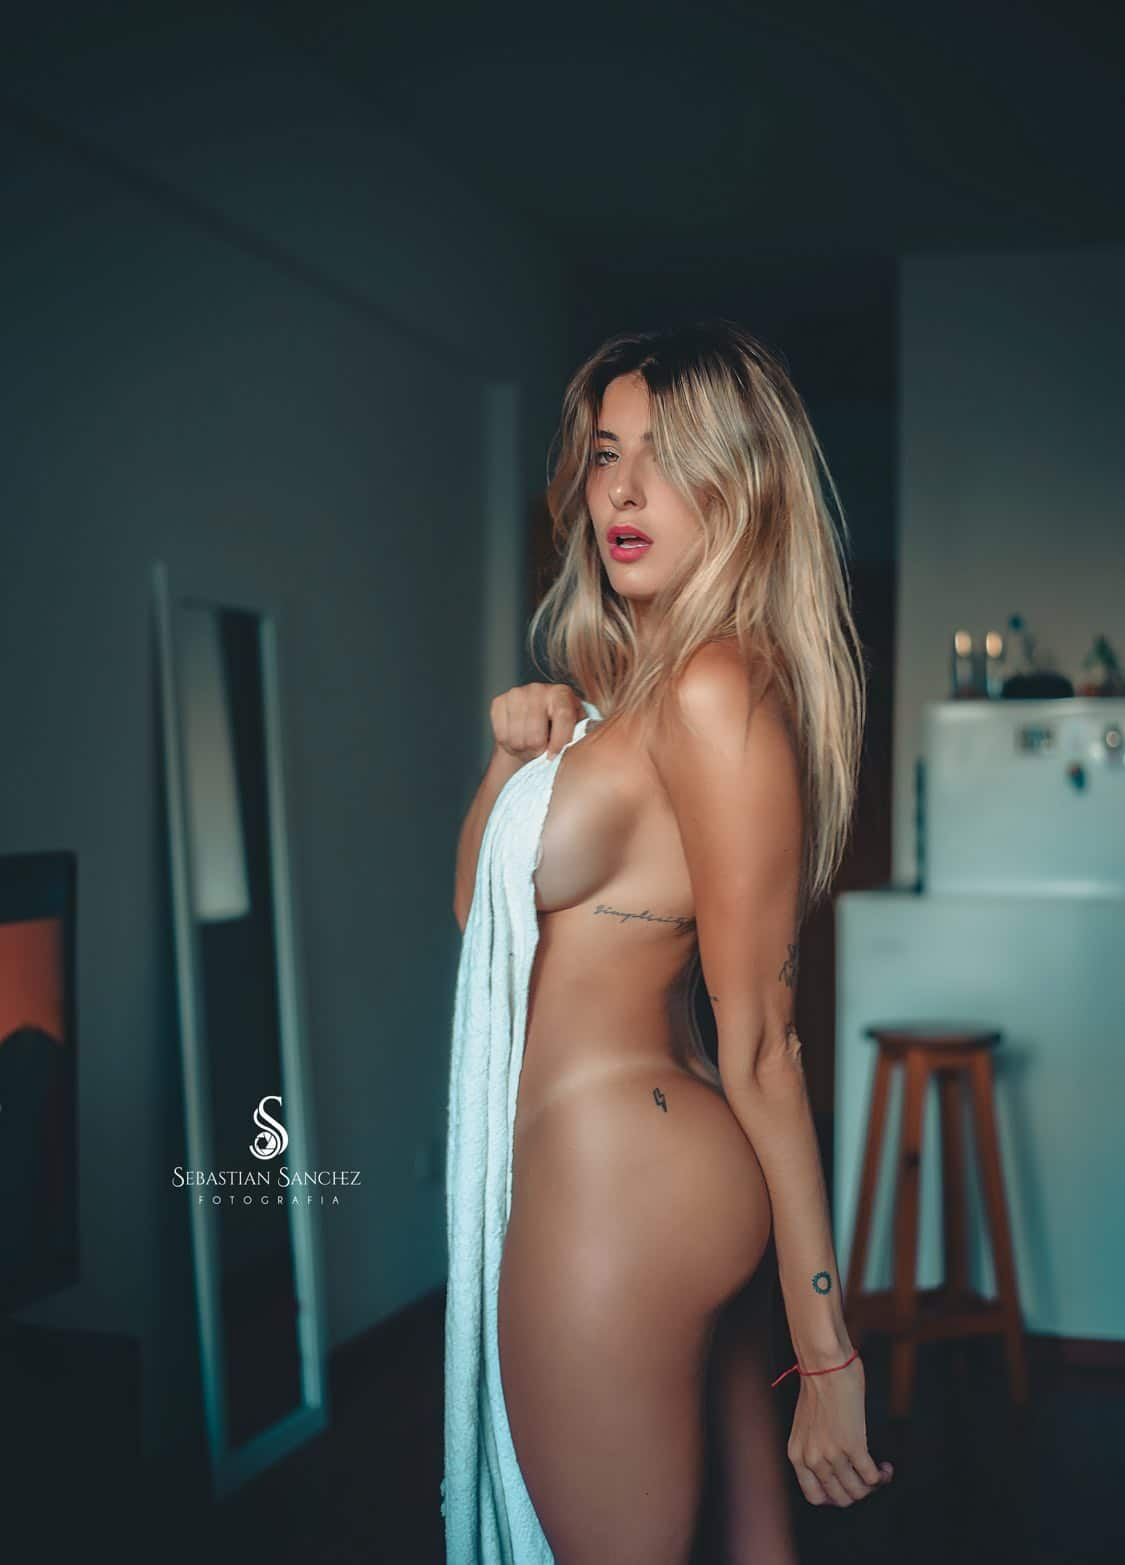 Beautiful nude blonde Argentine model Camila Sol Botti in a boudoir photoshoot showing her incredible fit body with her red lips open